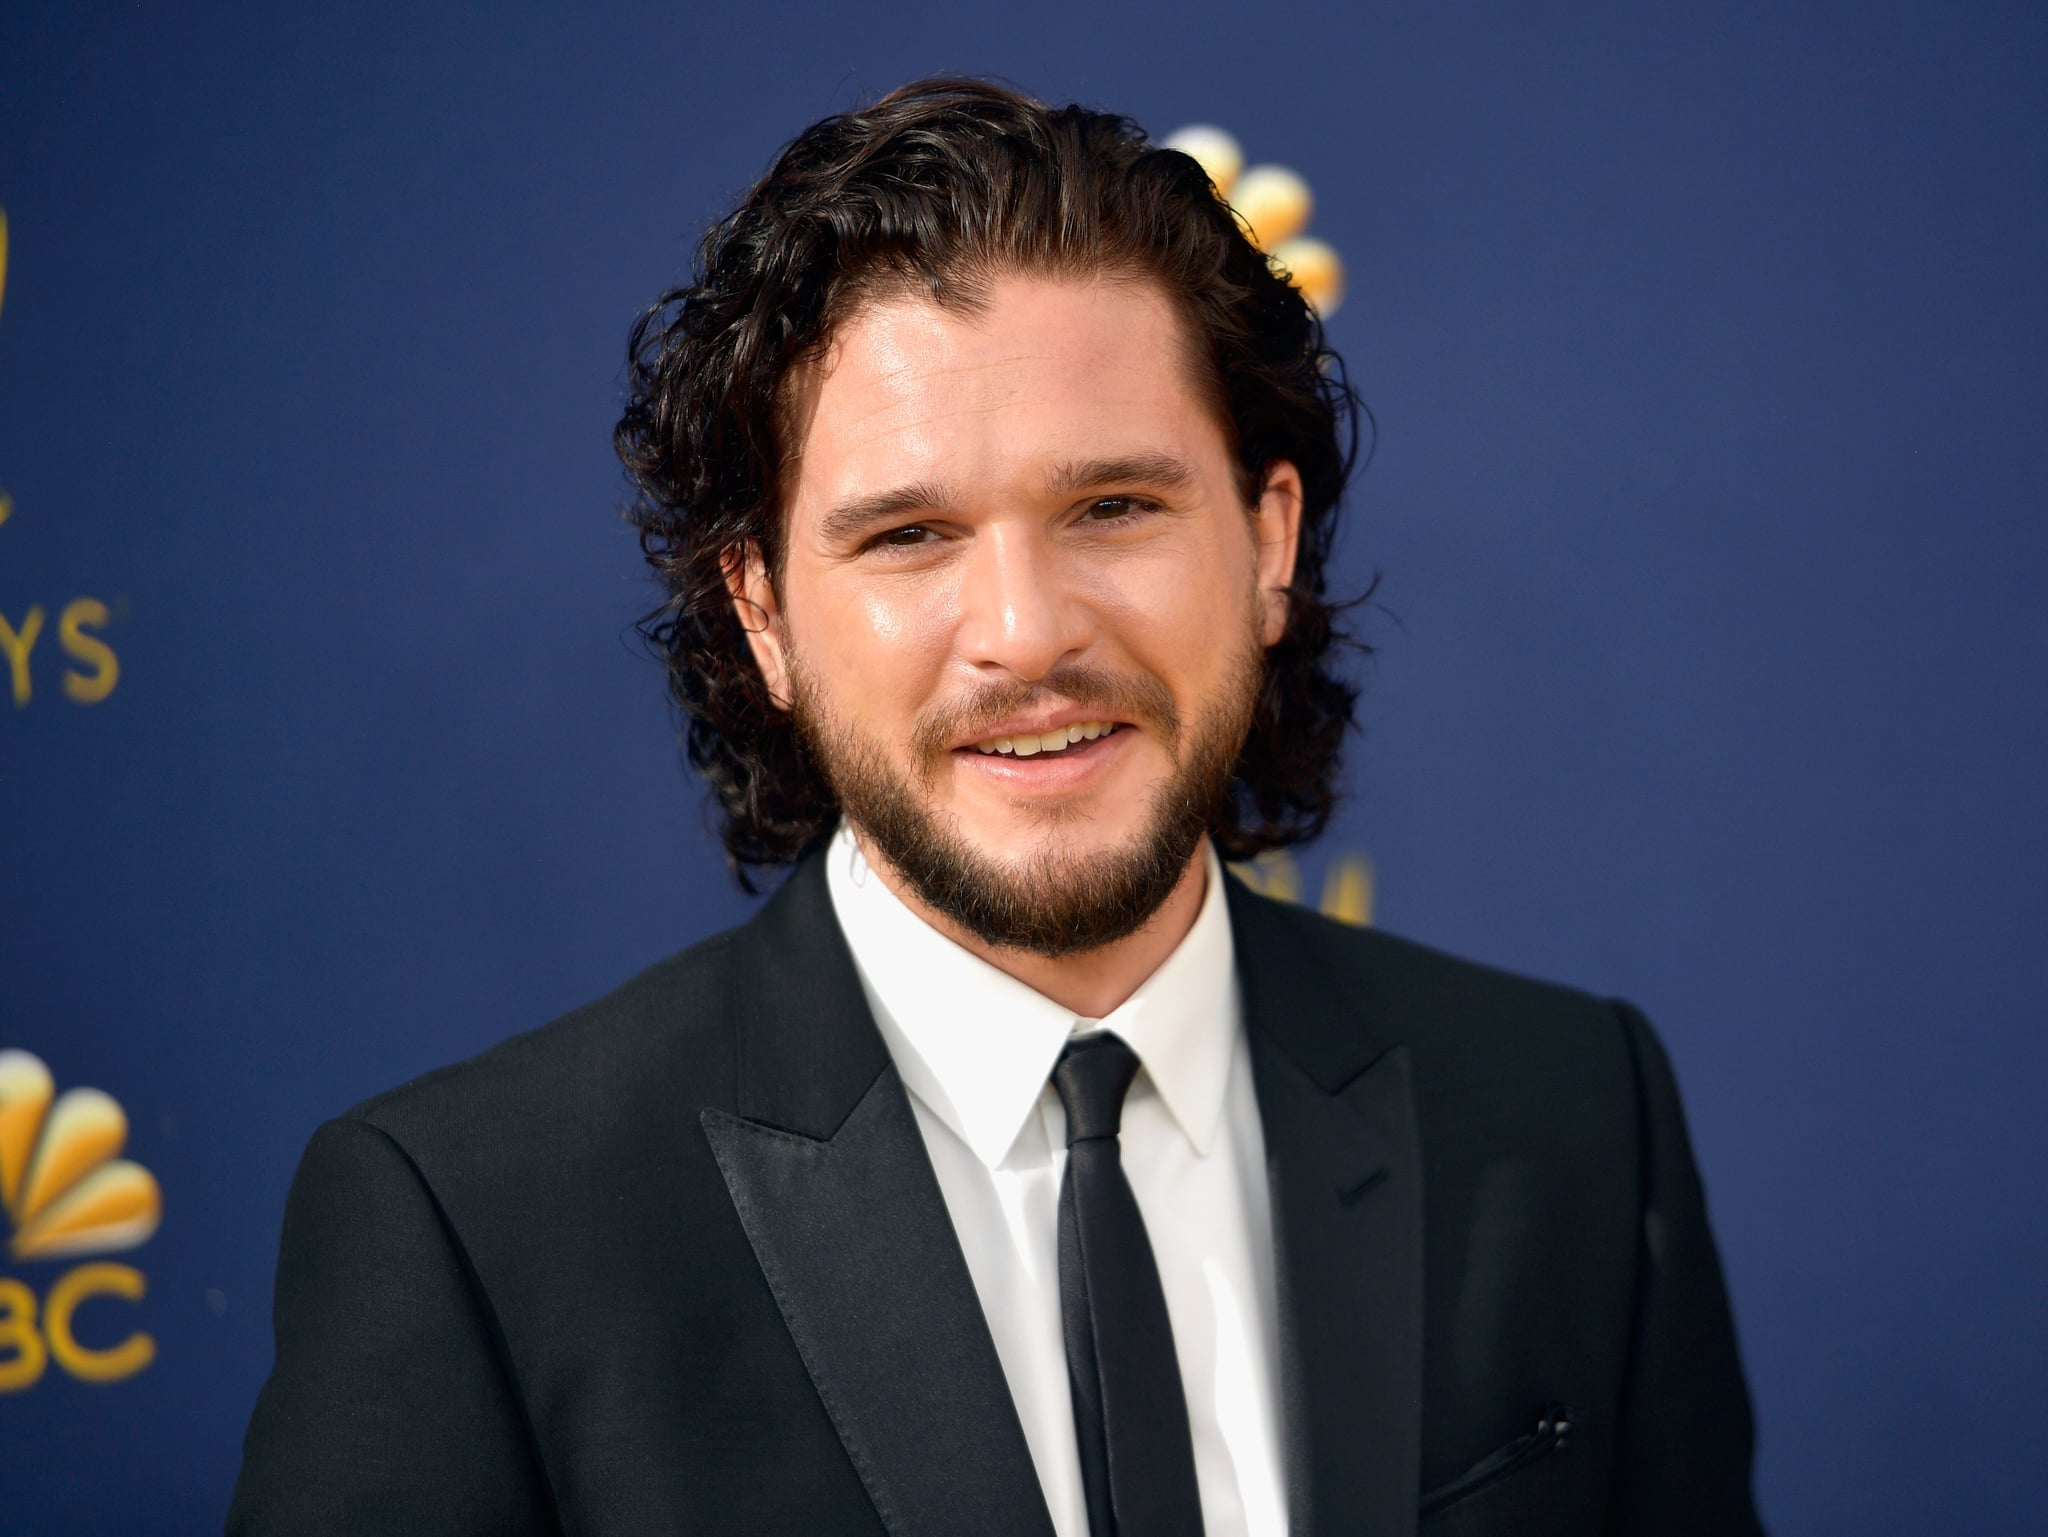 LOS ANGELES, CA - SEPTEMBER 17:  Kit Harington attends the 70th Emmy Awards at Microsoft Theatre on September 17, 2018 in Los Angeles, California.  (Photo by Matt Winkelmeyer/Getty Images)